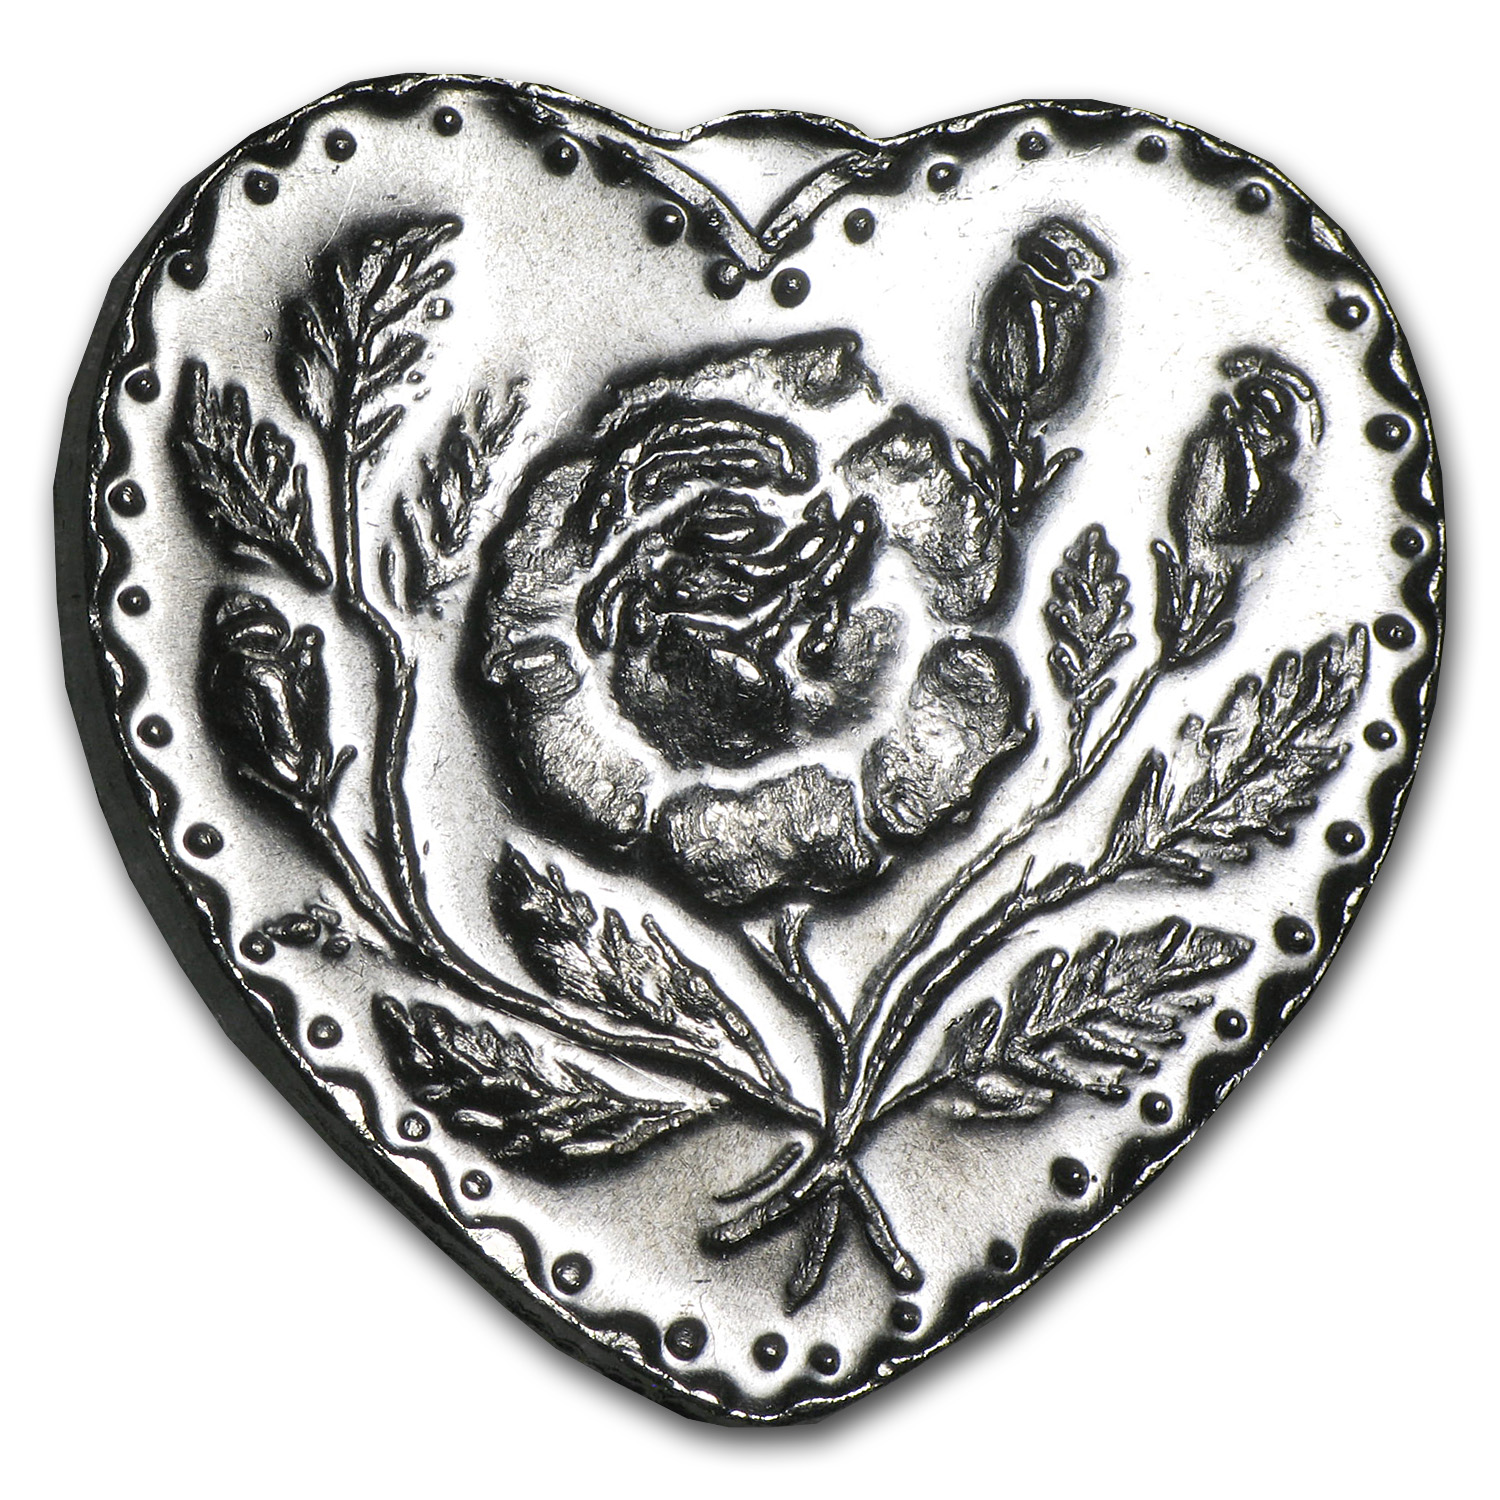 1/2 oz Silver Heart Shaped - For Someone Special (Rose)